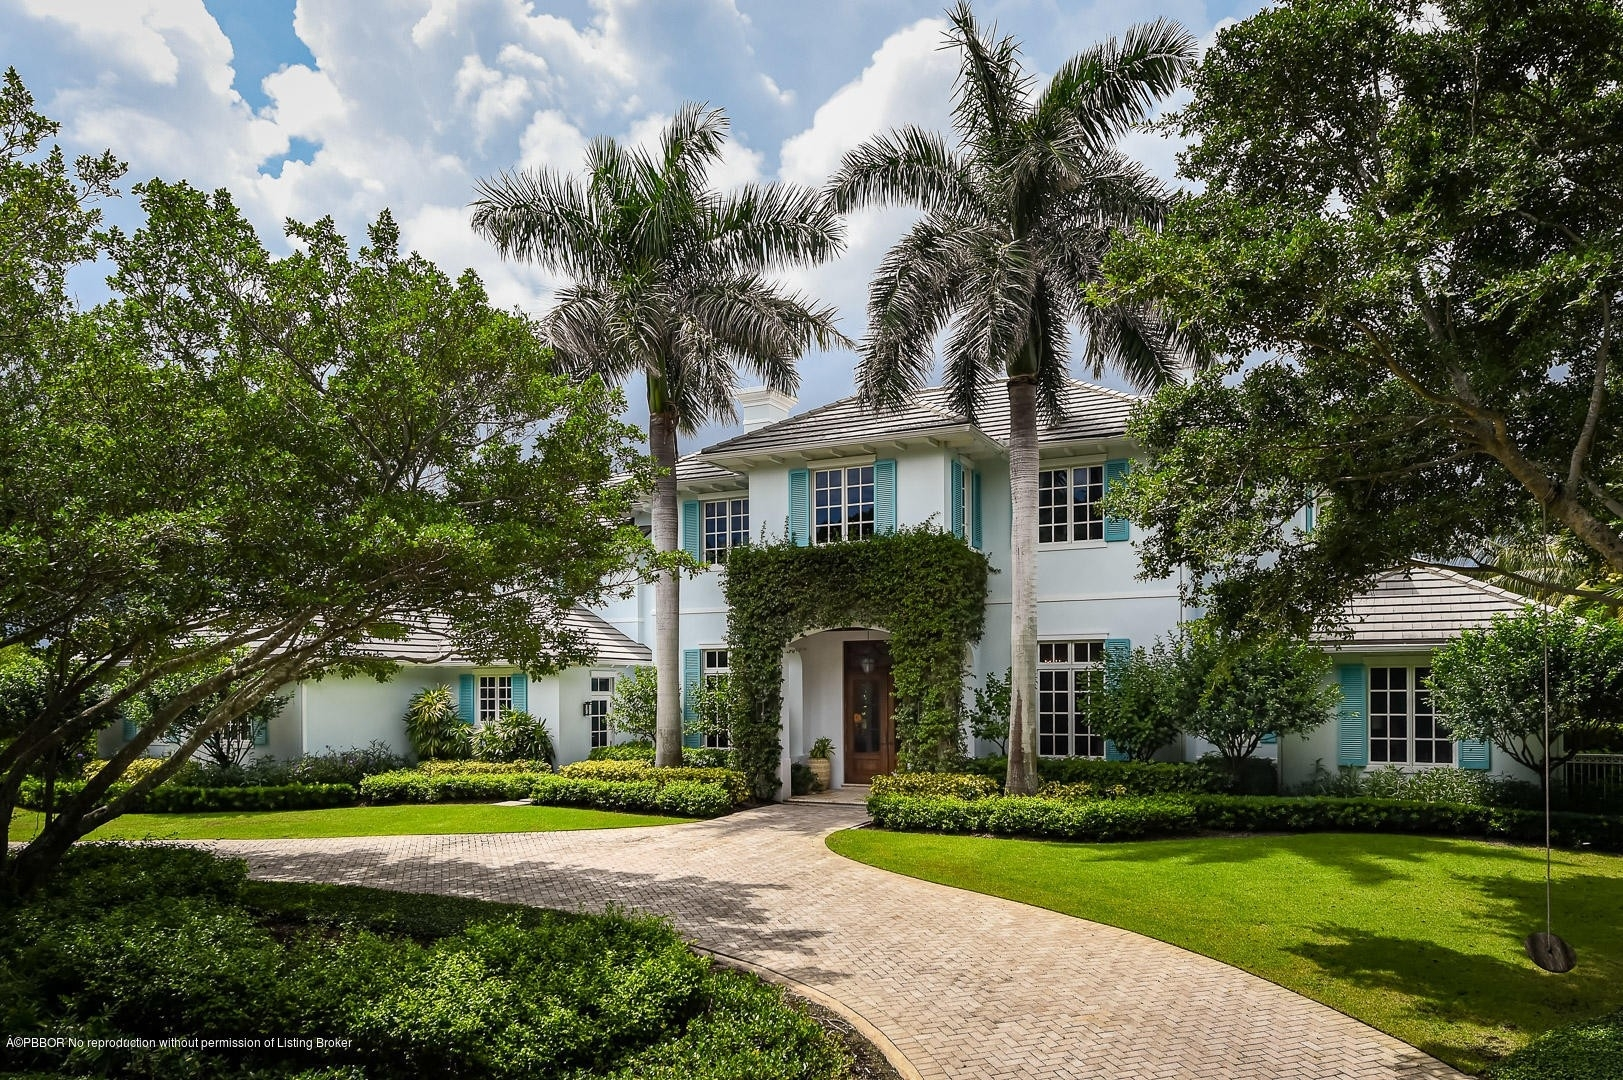 Property at Old Port Village, North Palm Beach, FL 33408